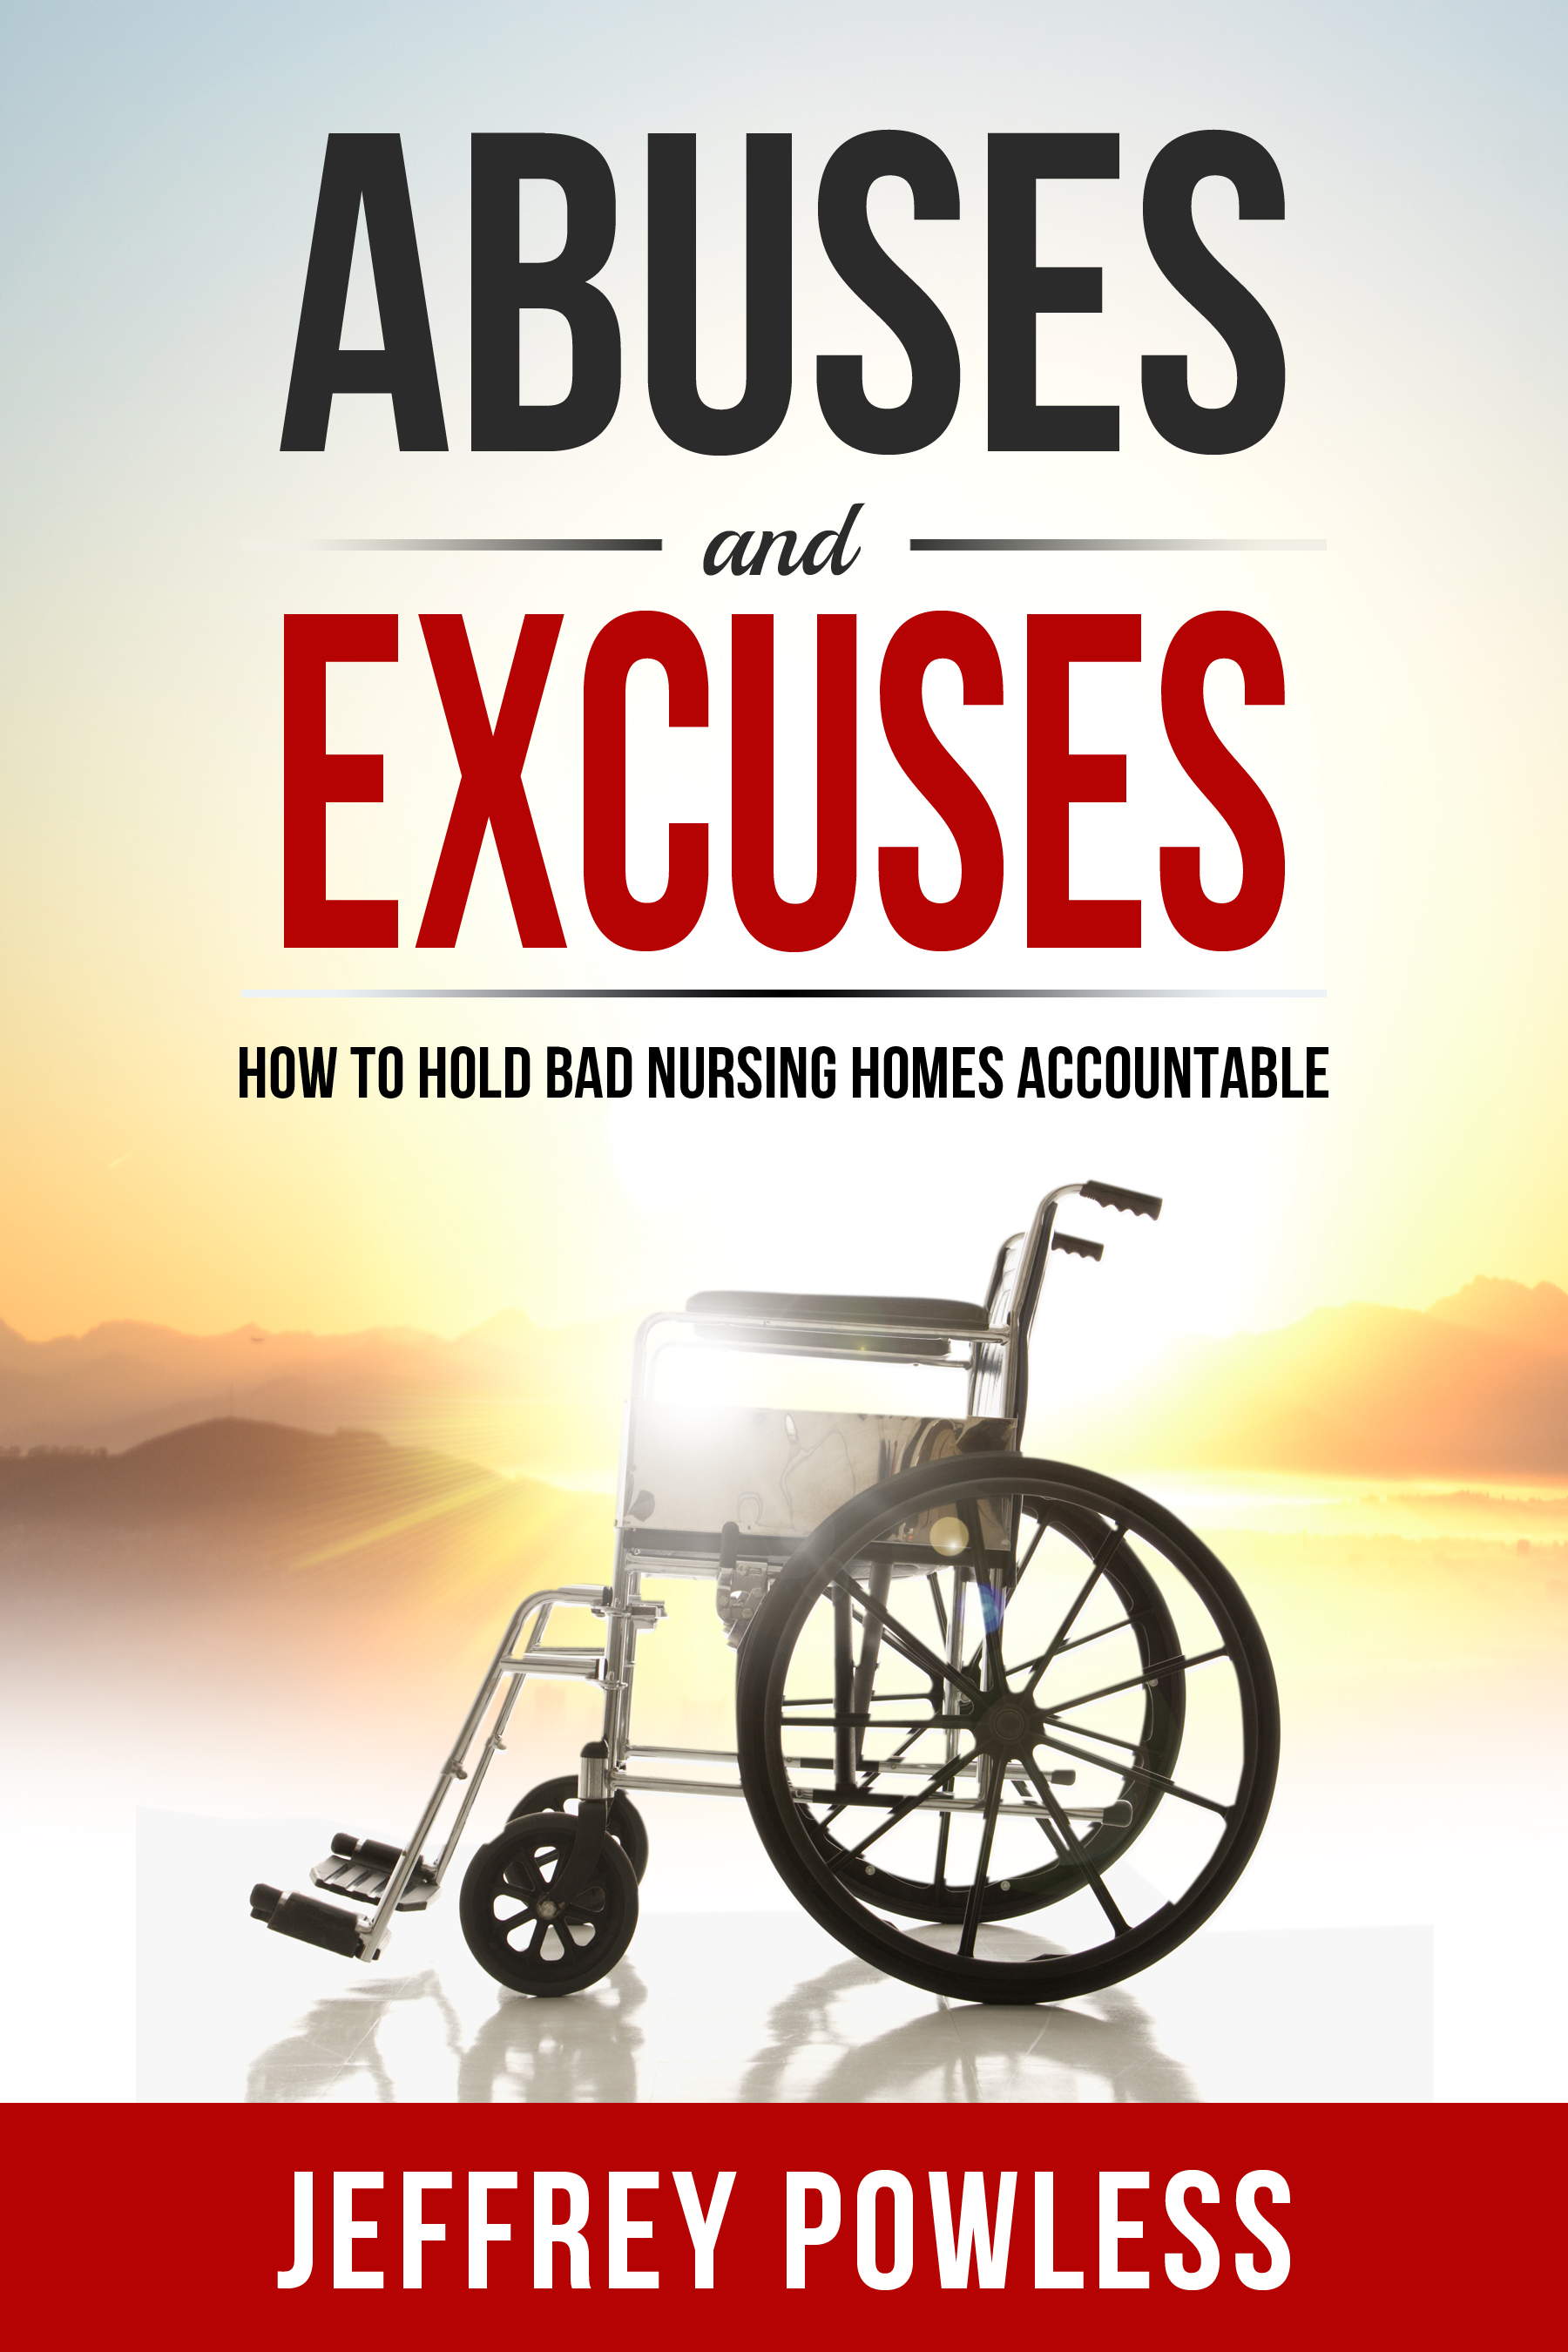 Abuses-and-Excuses-book